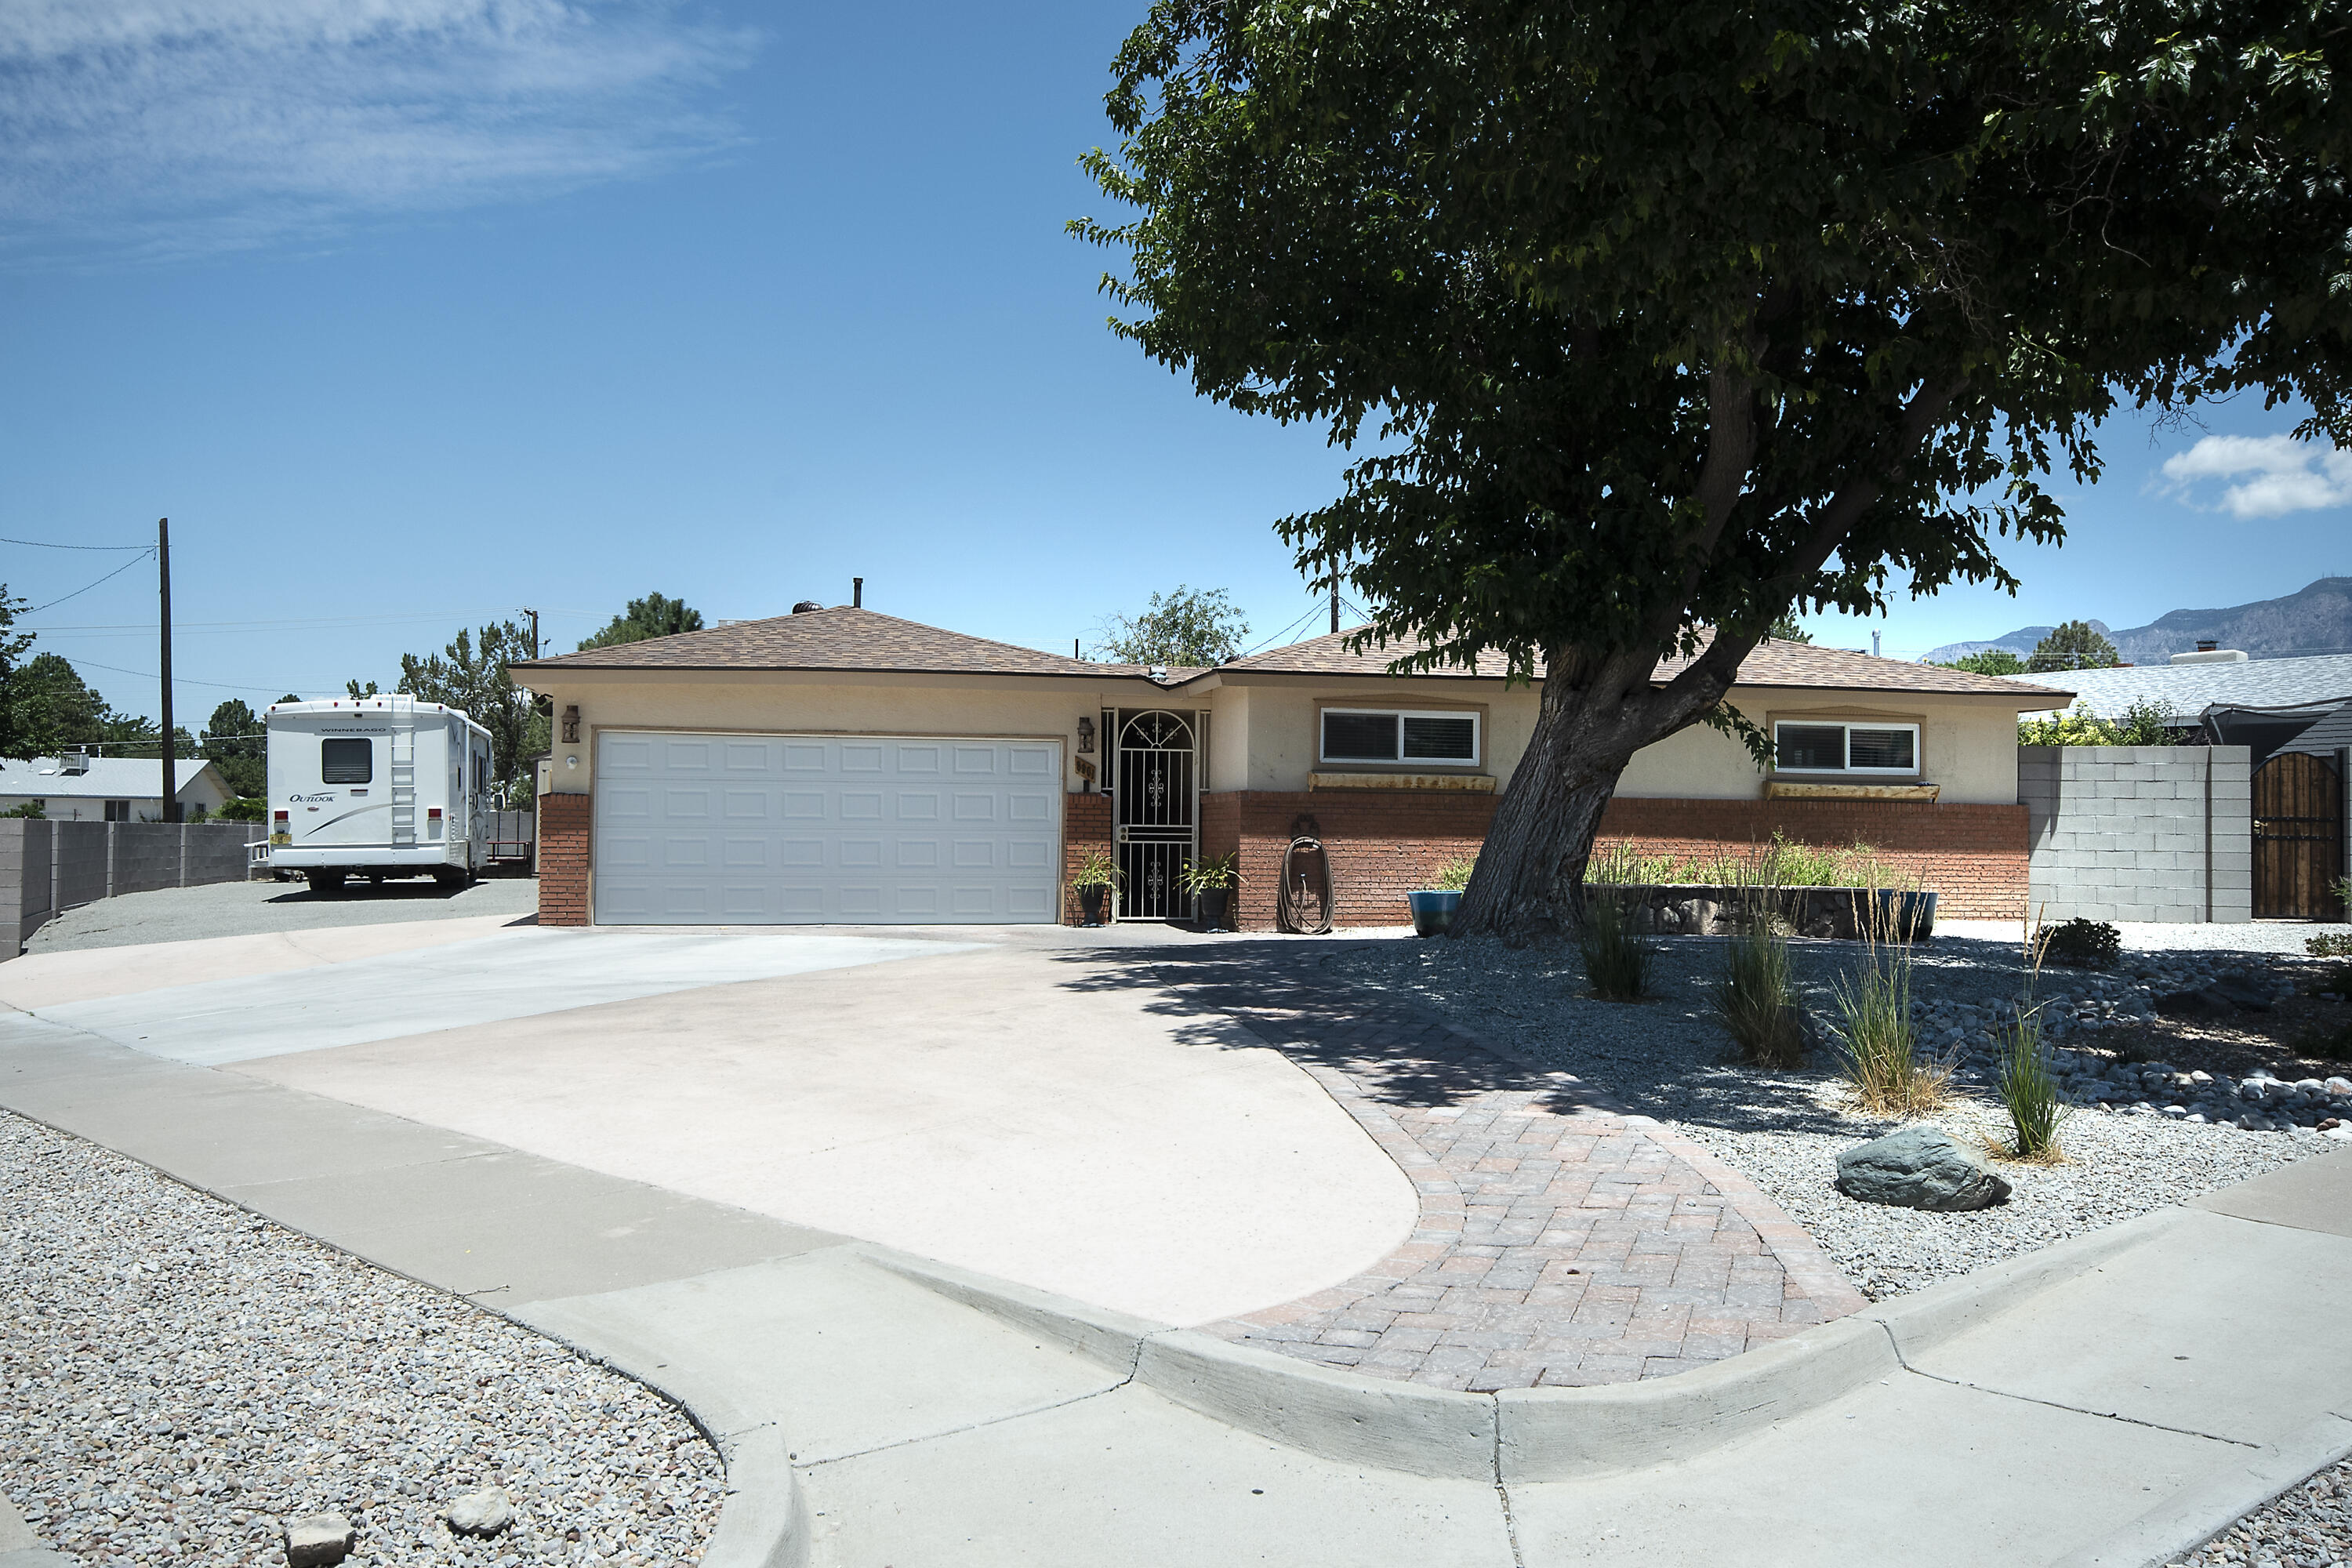 This home is TURN KEY! Located on an oversized corner lot. The Sellers have done all the remodel work for you. This open concept, modern farm house is super clean and ready for it's new owner. The home is very bright with tons of natural light. The kitchen has new appliances to include double ovens, beautiful granite countertops, white cabinets and laminate floors. Guest Bathroom and Ensuite Bathroom are also stunning, white and clean! Owners Suite has been updated and includes his and her closets, private seating area and gorgeous oversized shower with separate tub. The side yard access is perfect for storing an RV or Boat! The Backyard is beautiful with trough garden beds, grass, trees, play area and covered patio.